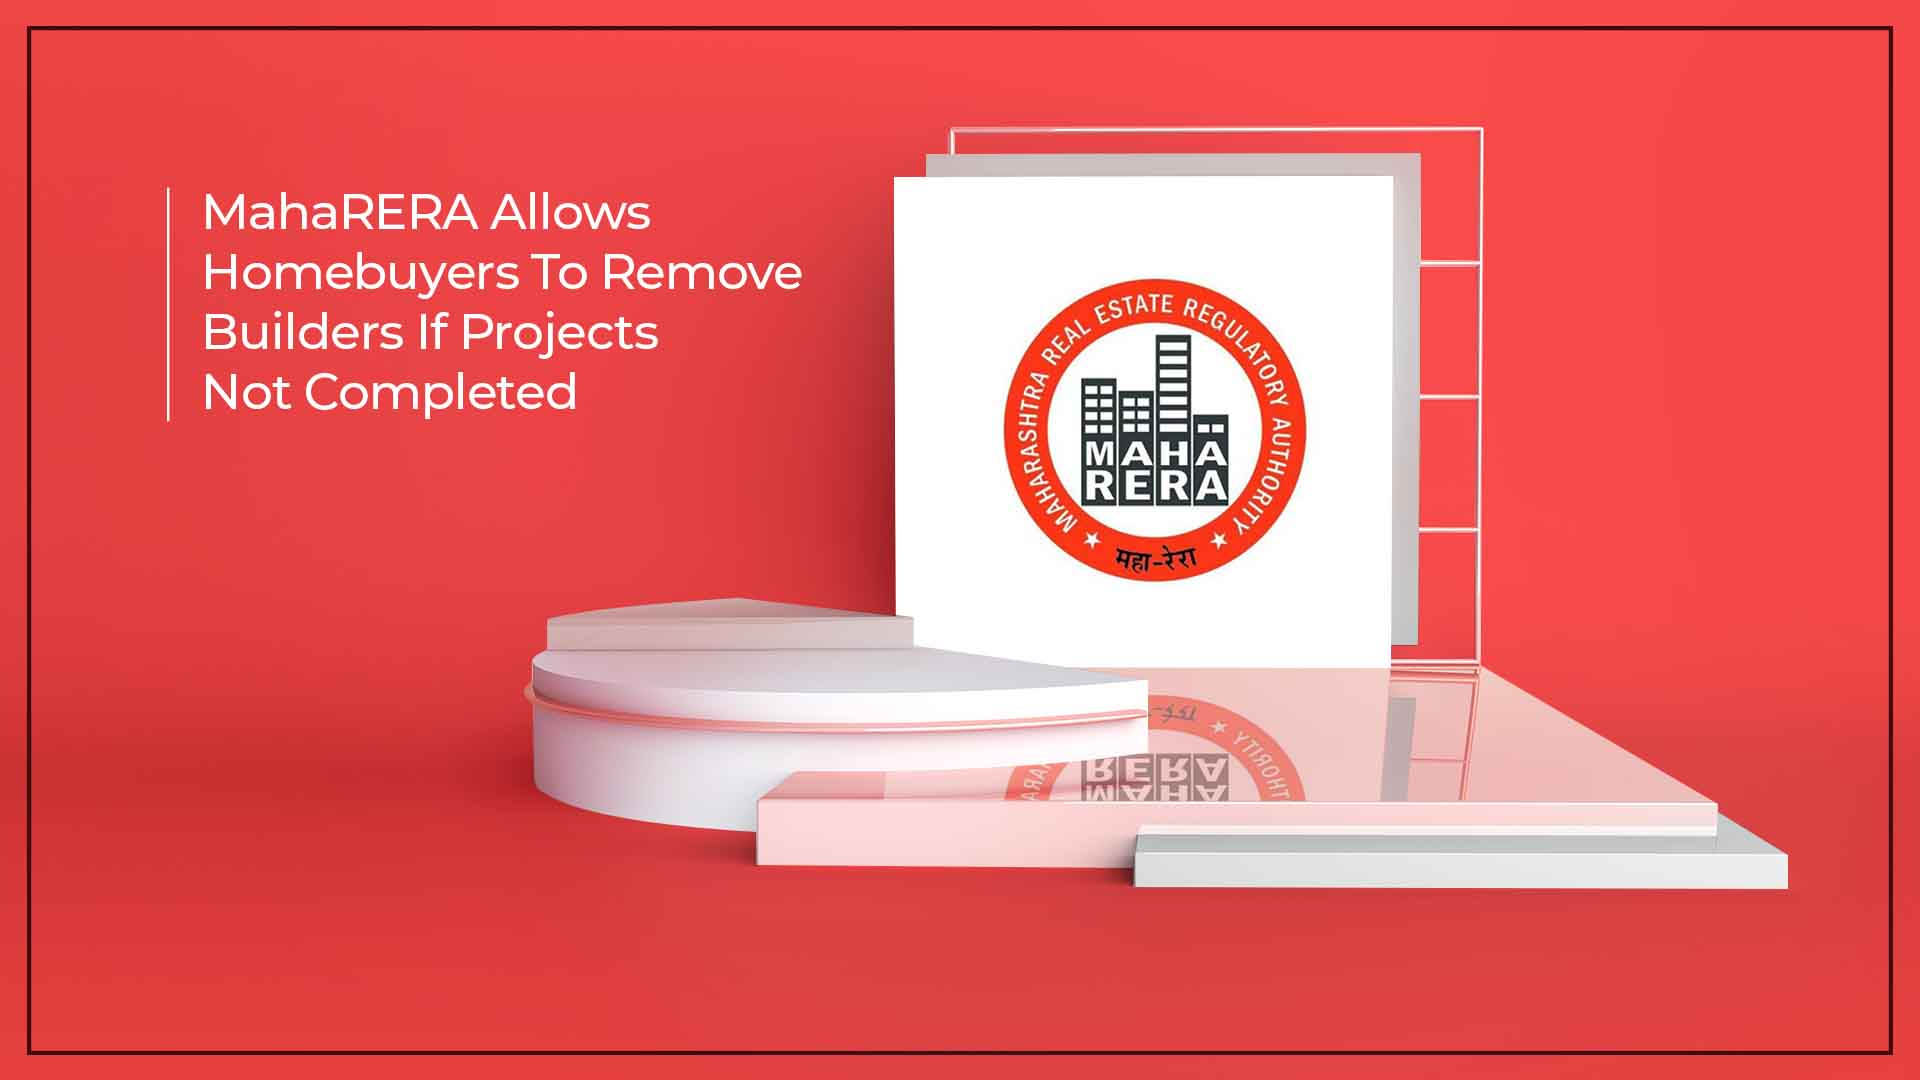 MahaRERA Grants Homebuyers Rights To Take Over Delayed Projects